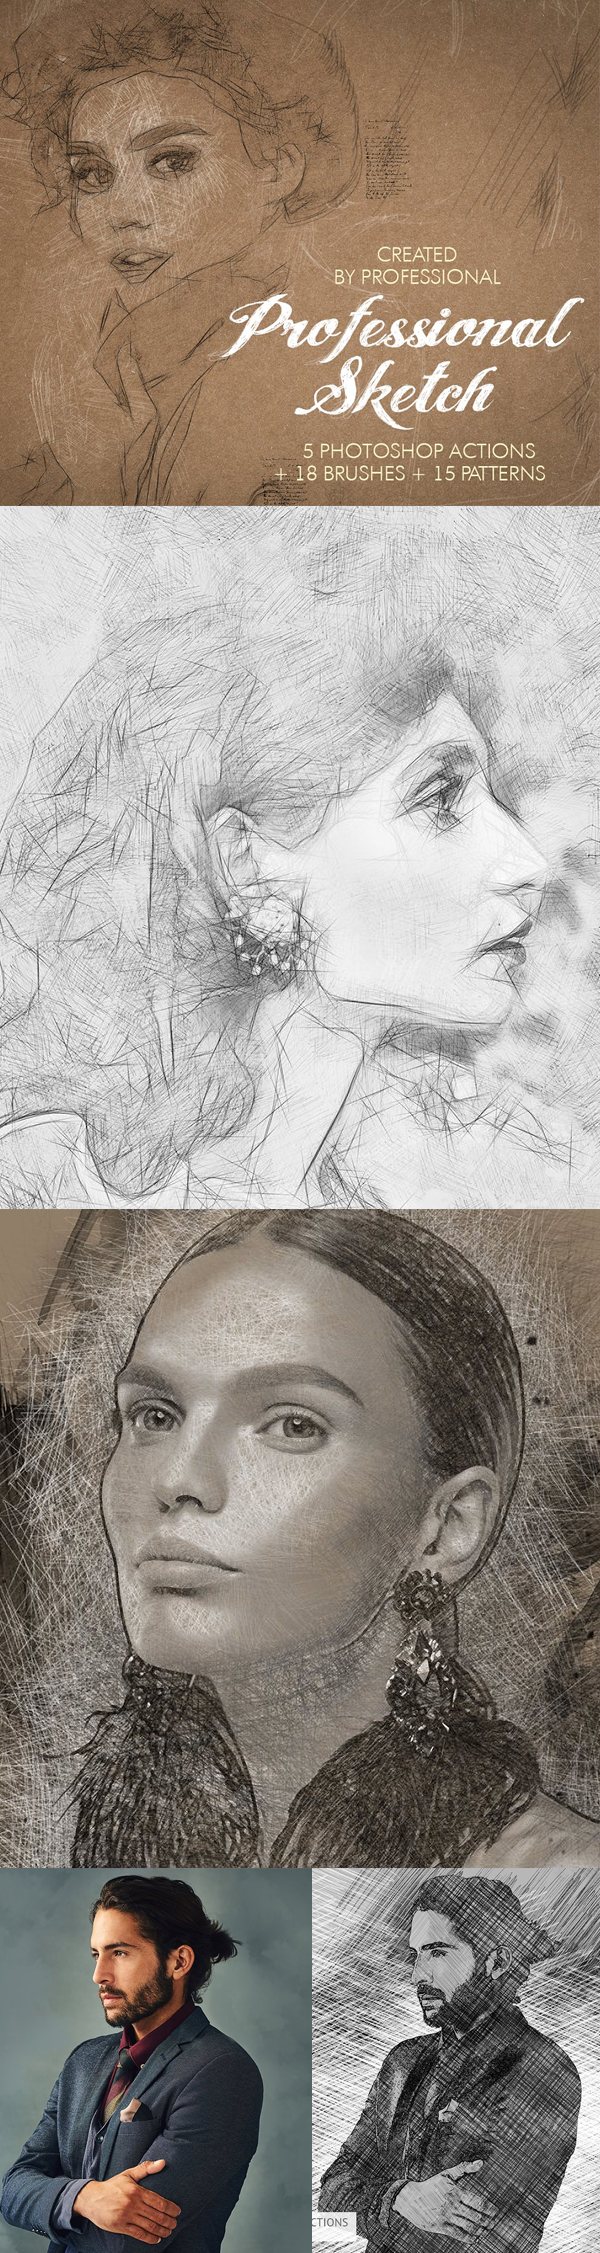 Professional Sketch Photoshop Action